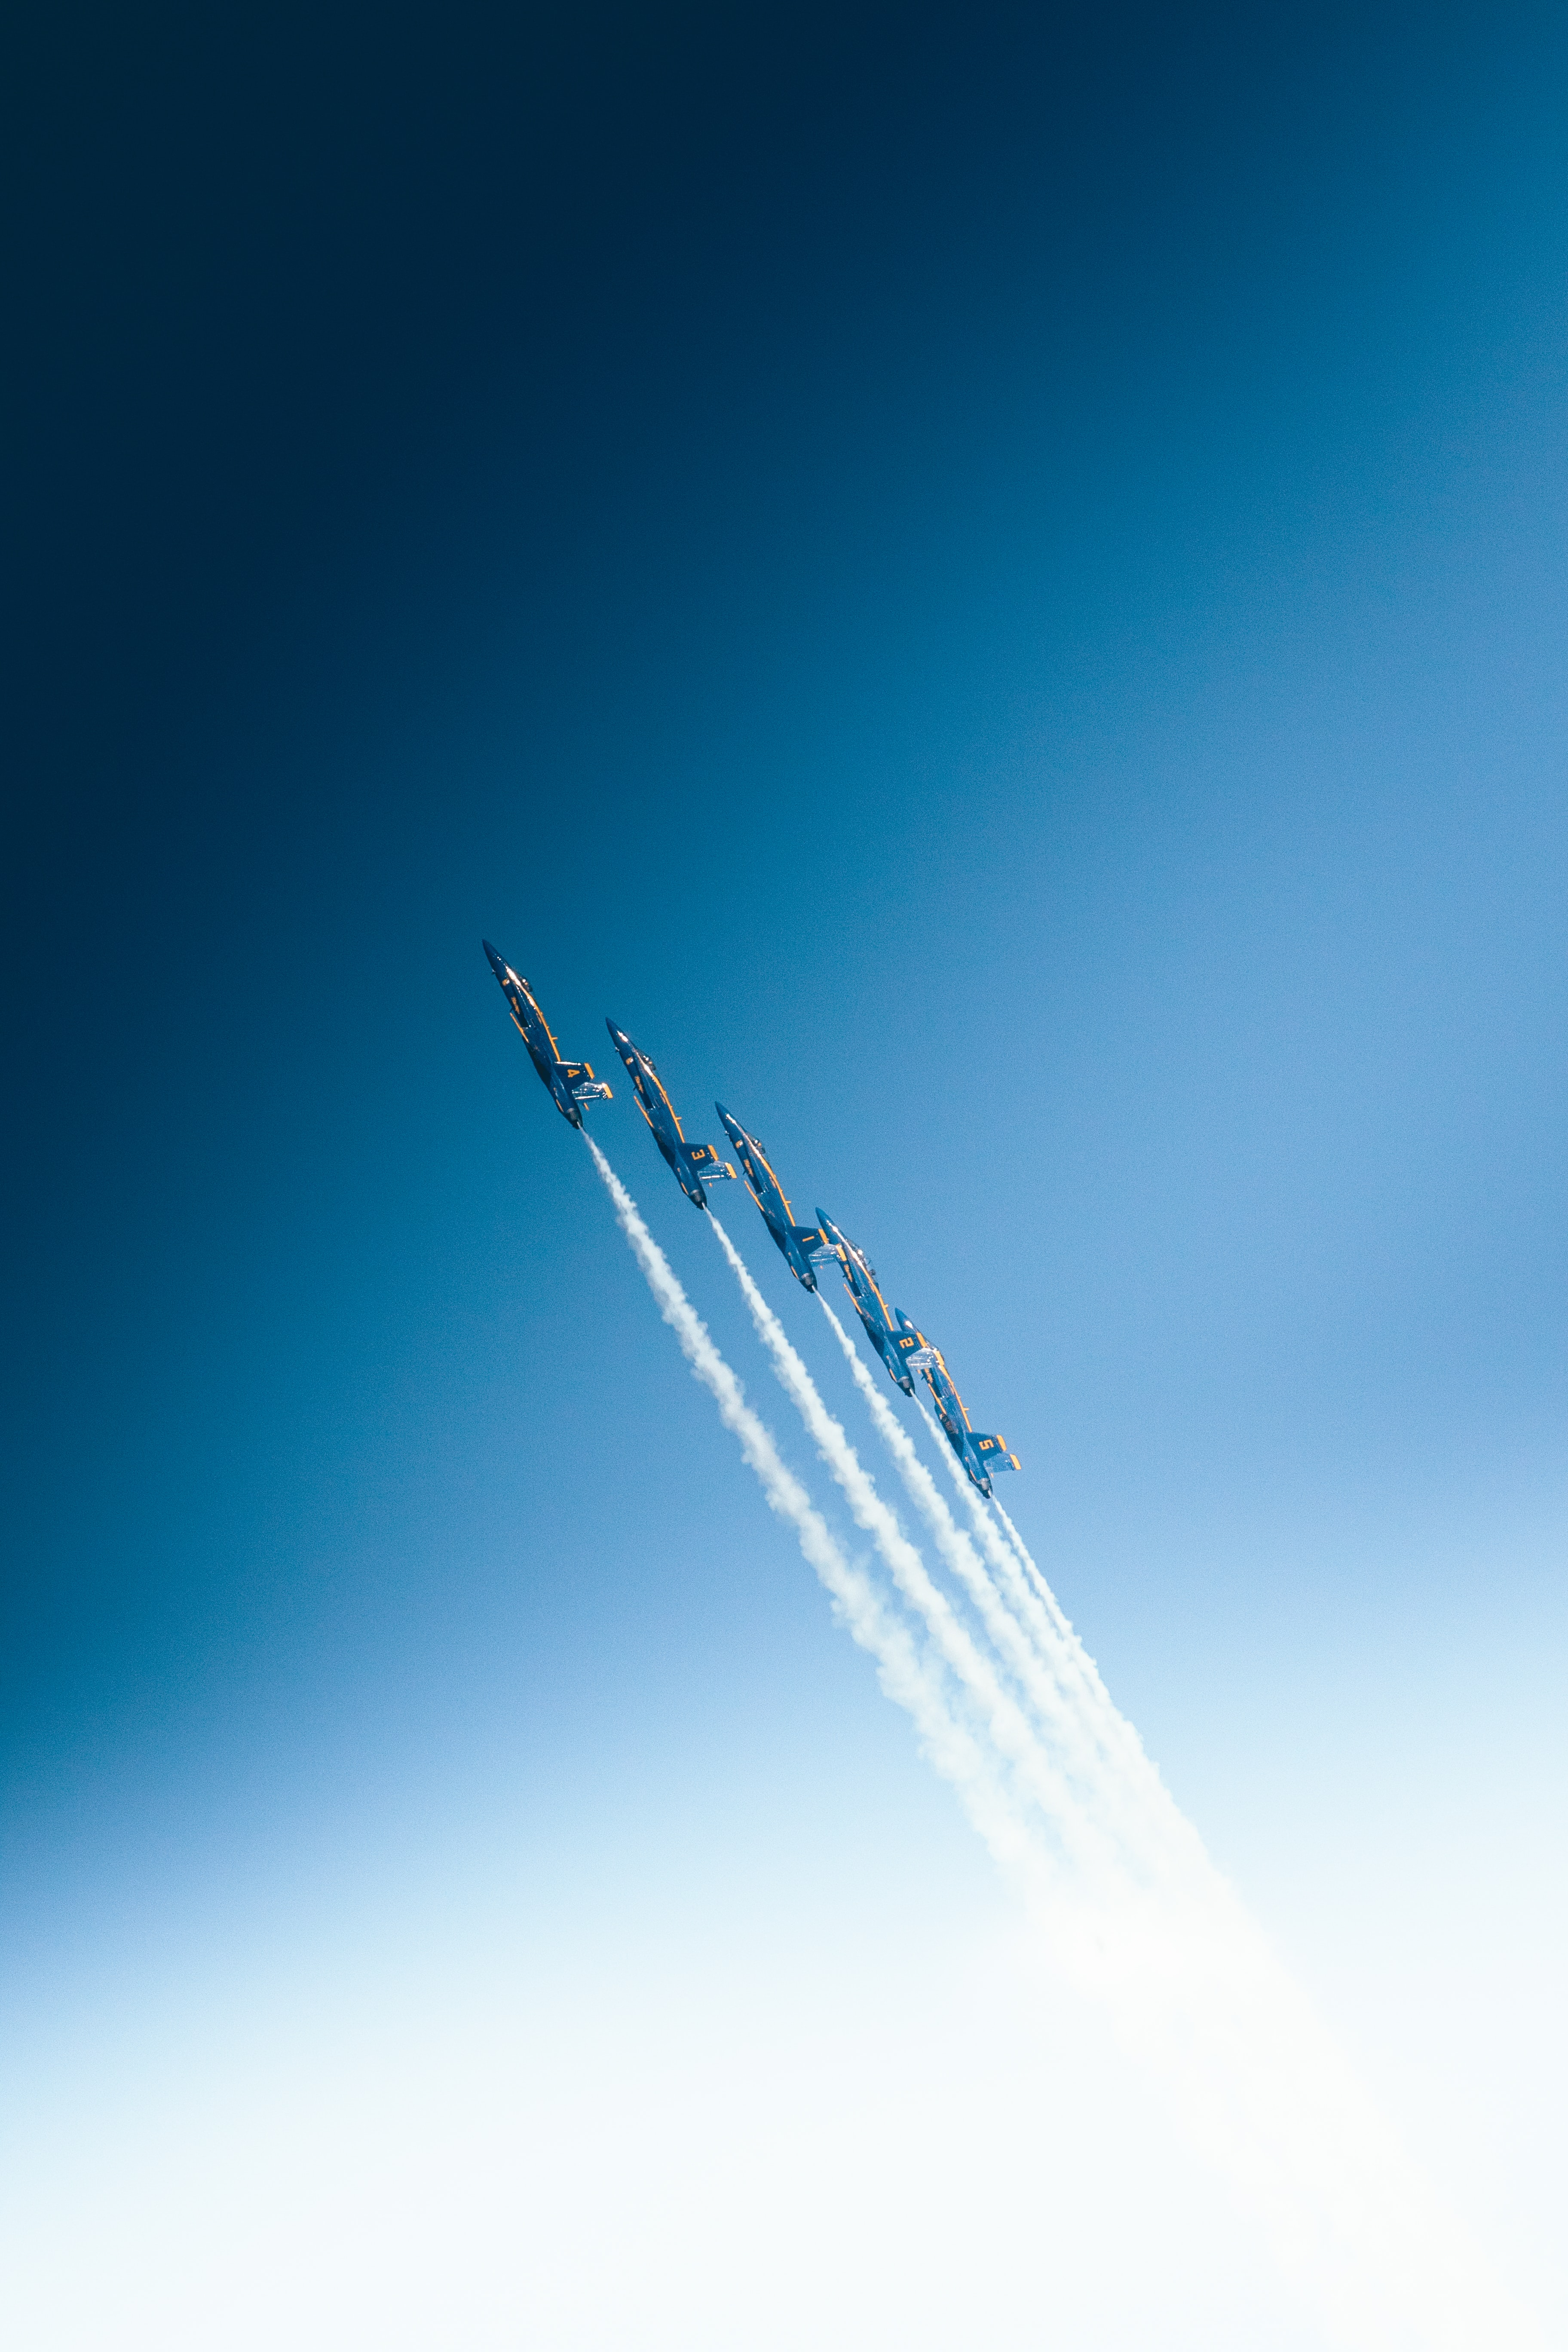 Five aerobatics airplanes with smoke trails in an aerobatics show.